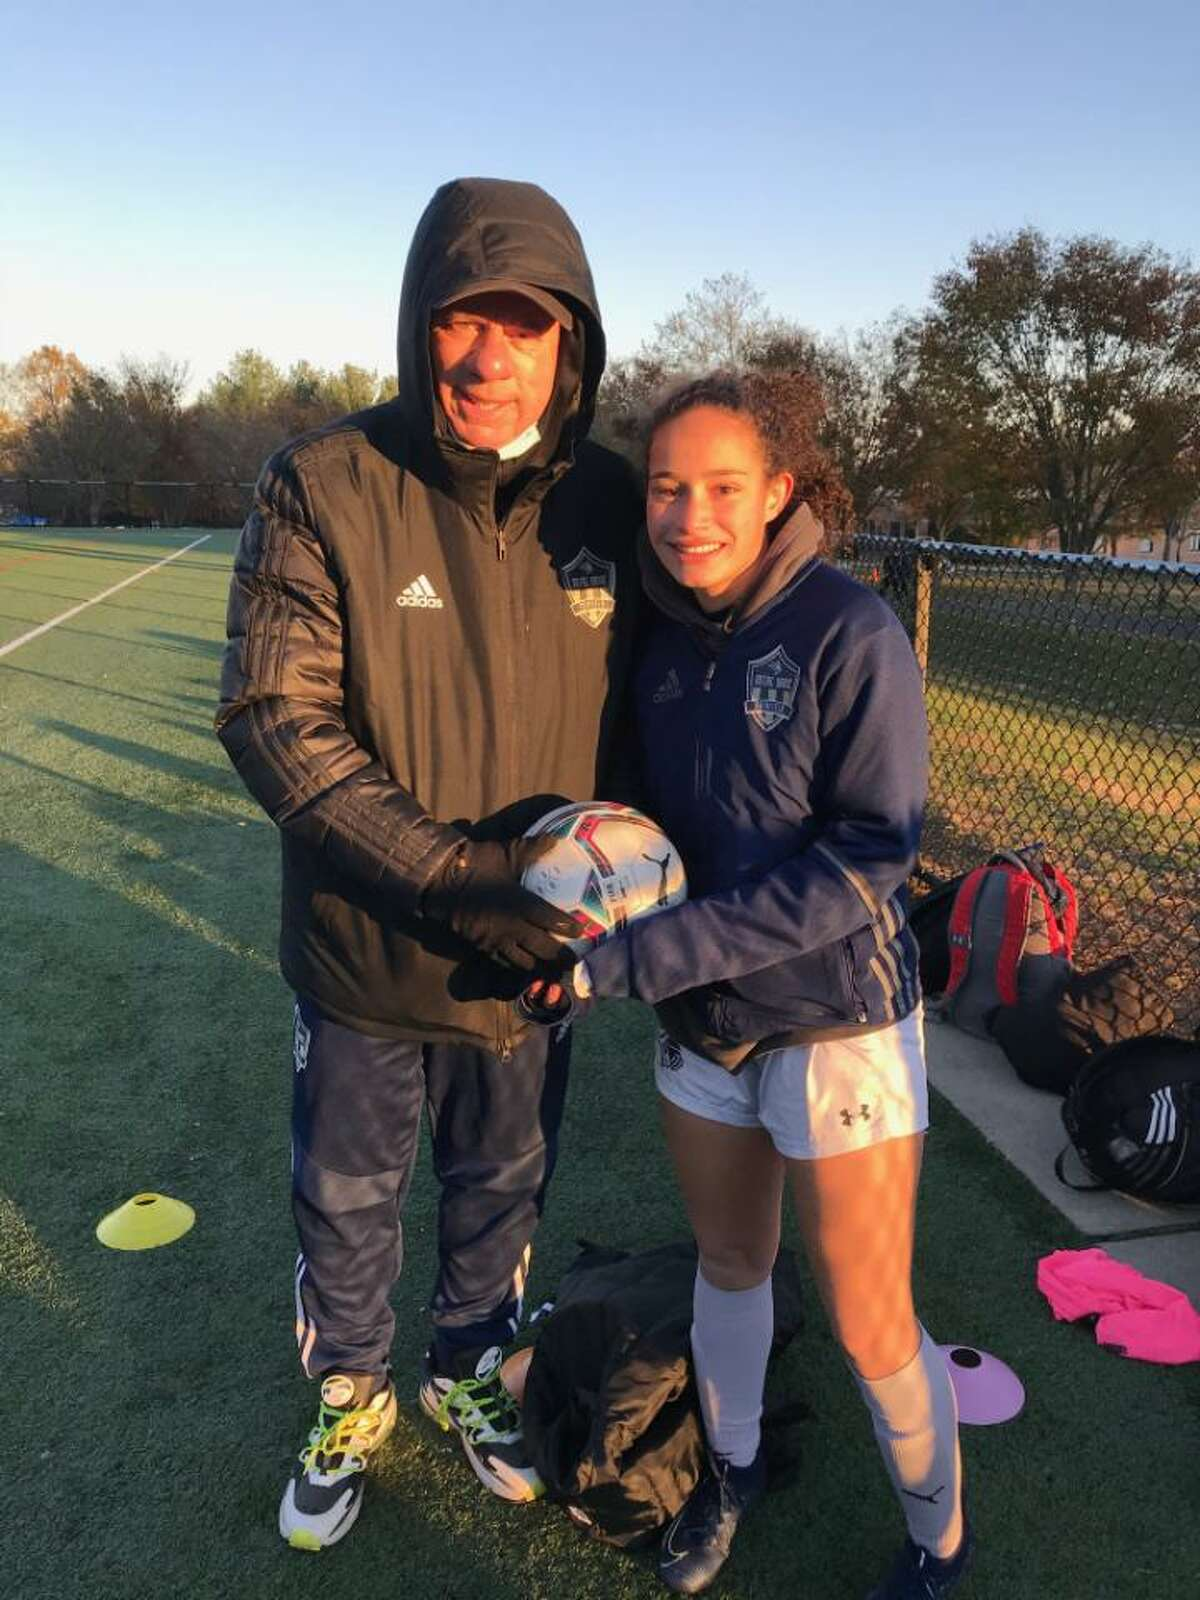 Toni Domingos, right, became Notre Dame-Fairfield's all-time leading scorer on Monday, Nov. 2, 2020. At left is Notre Dame coach Wayne Mones.